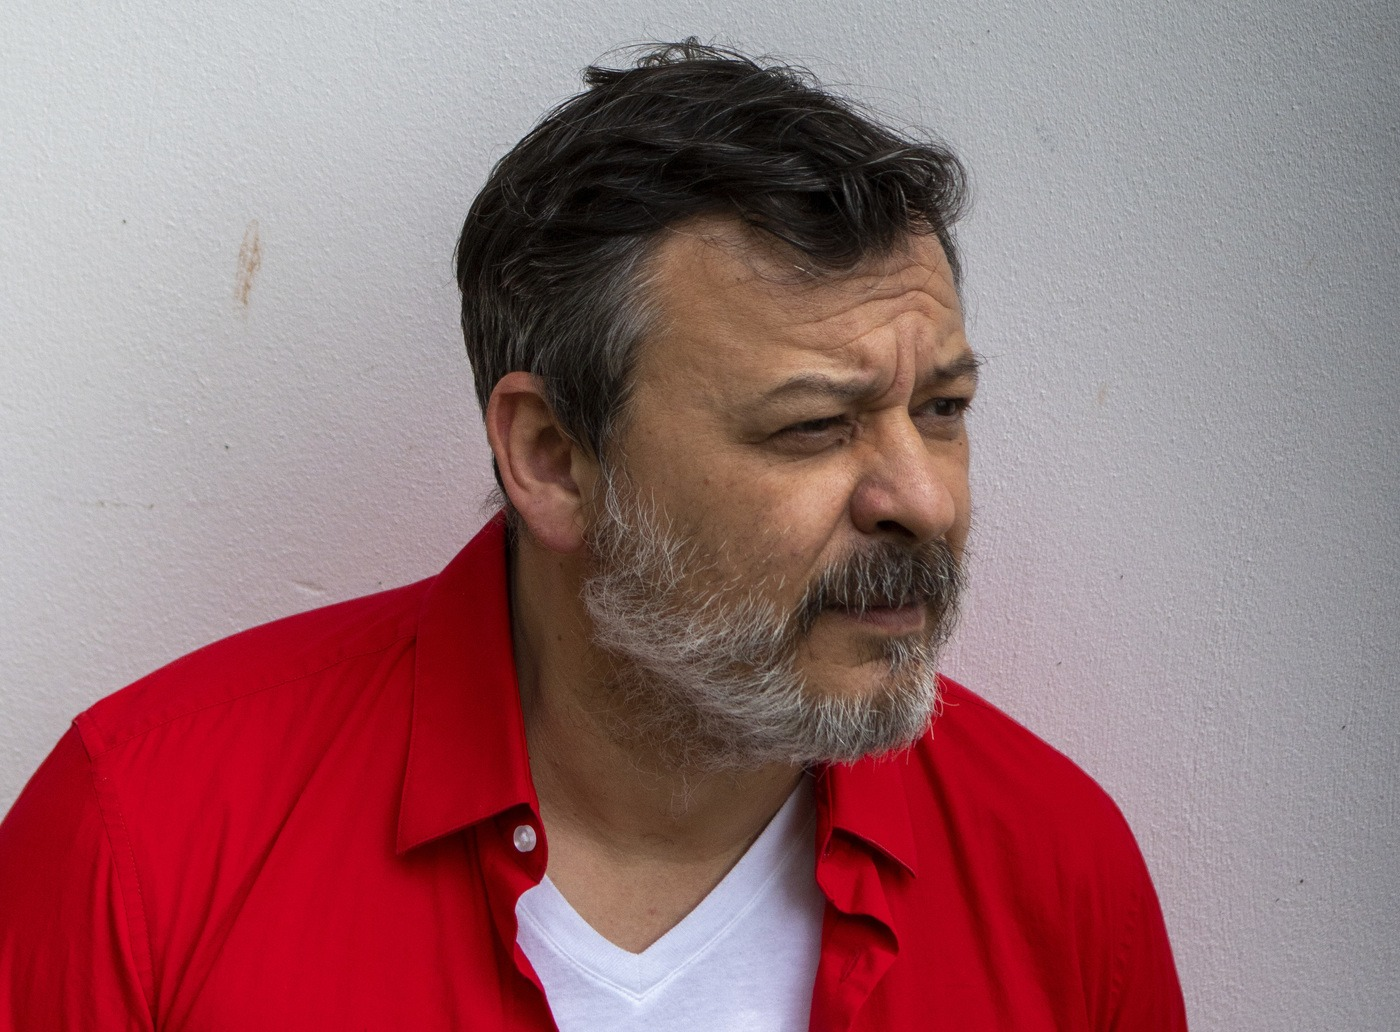 imagen 3 de James Dean Bradfield presenta un doble single adelanto de su próximo disco.